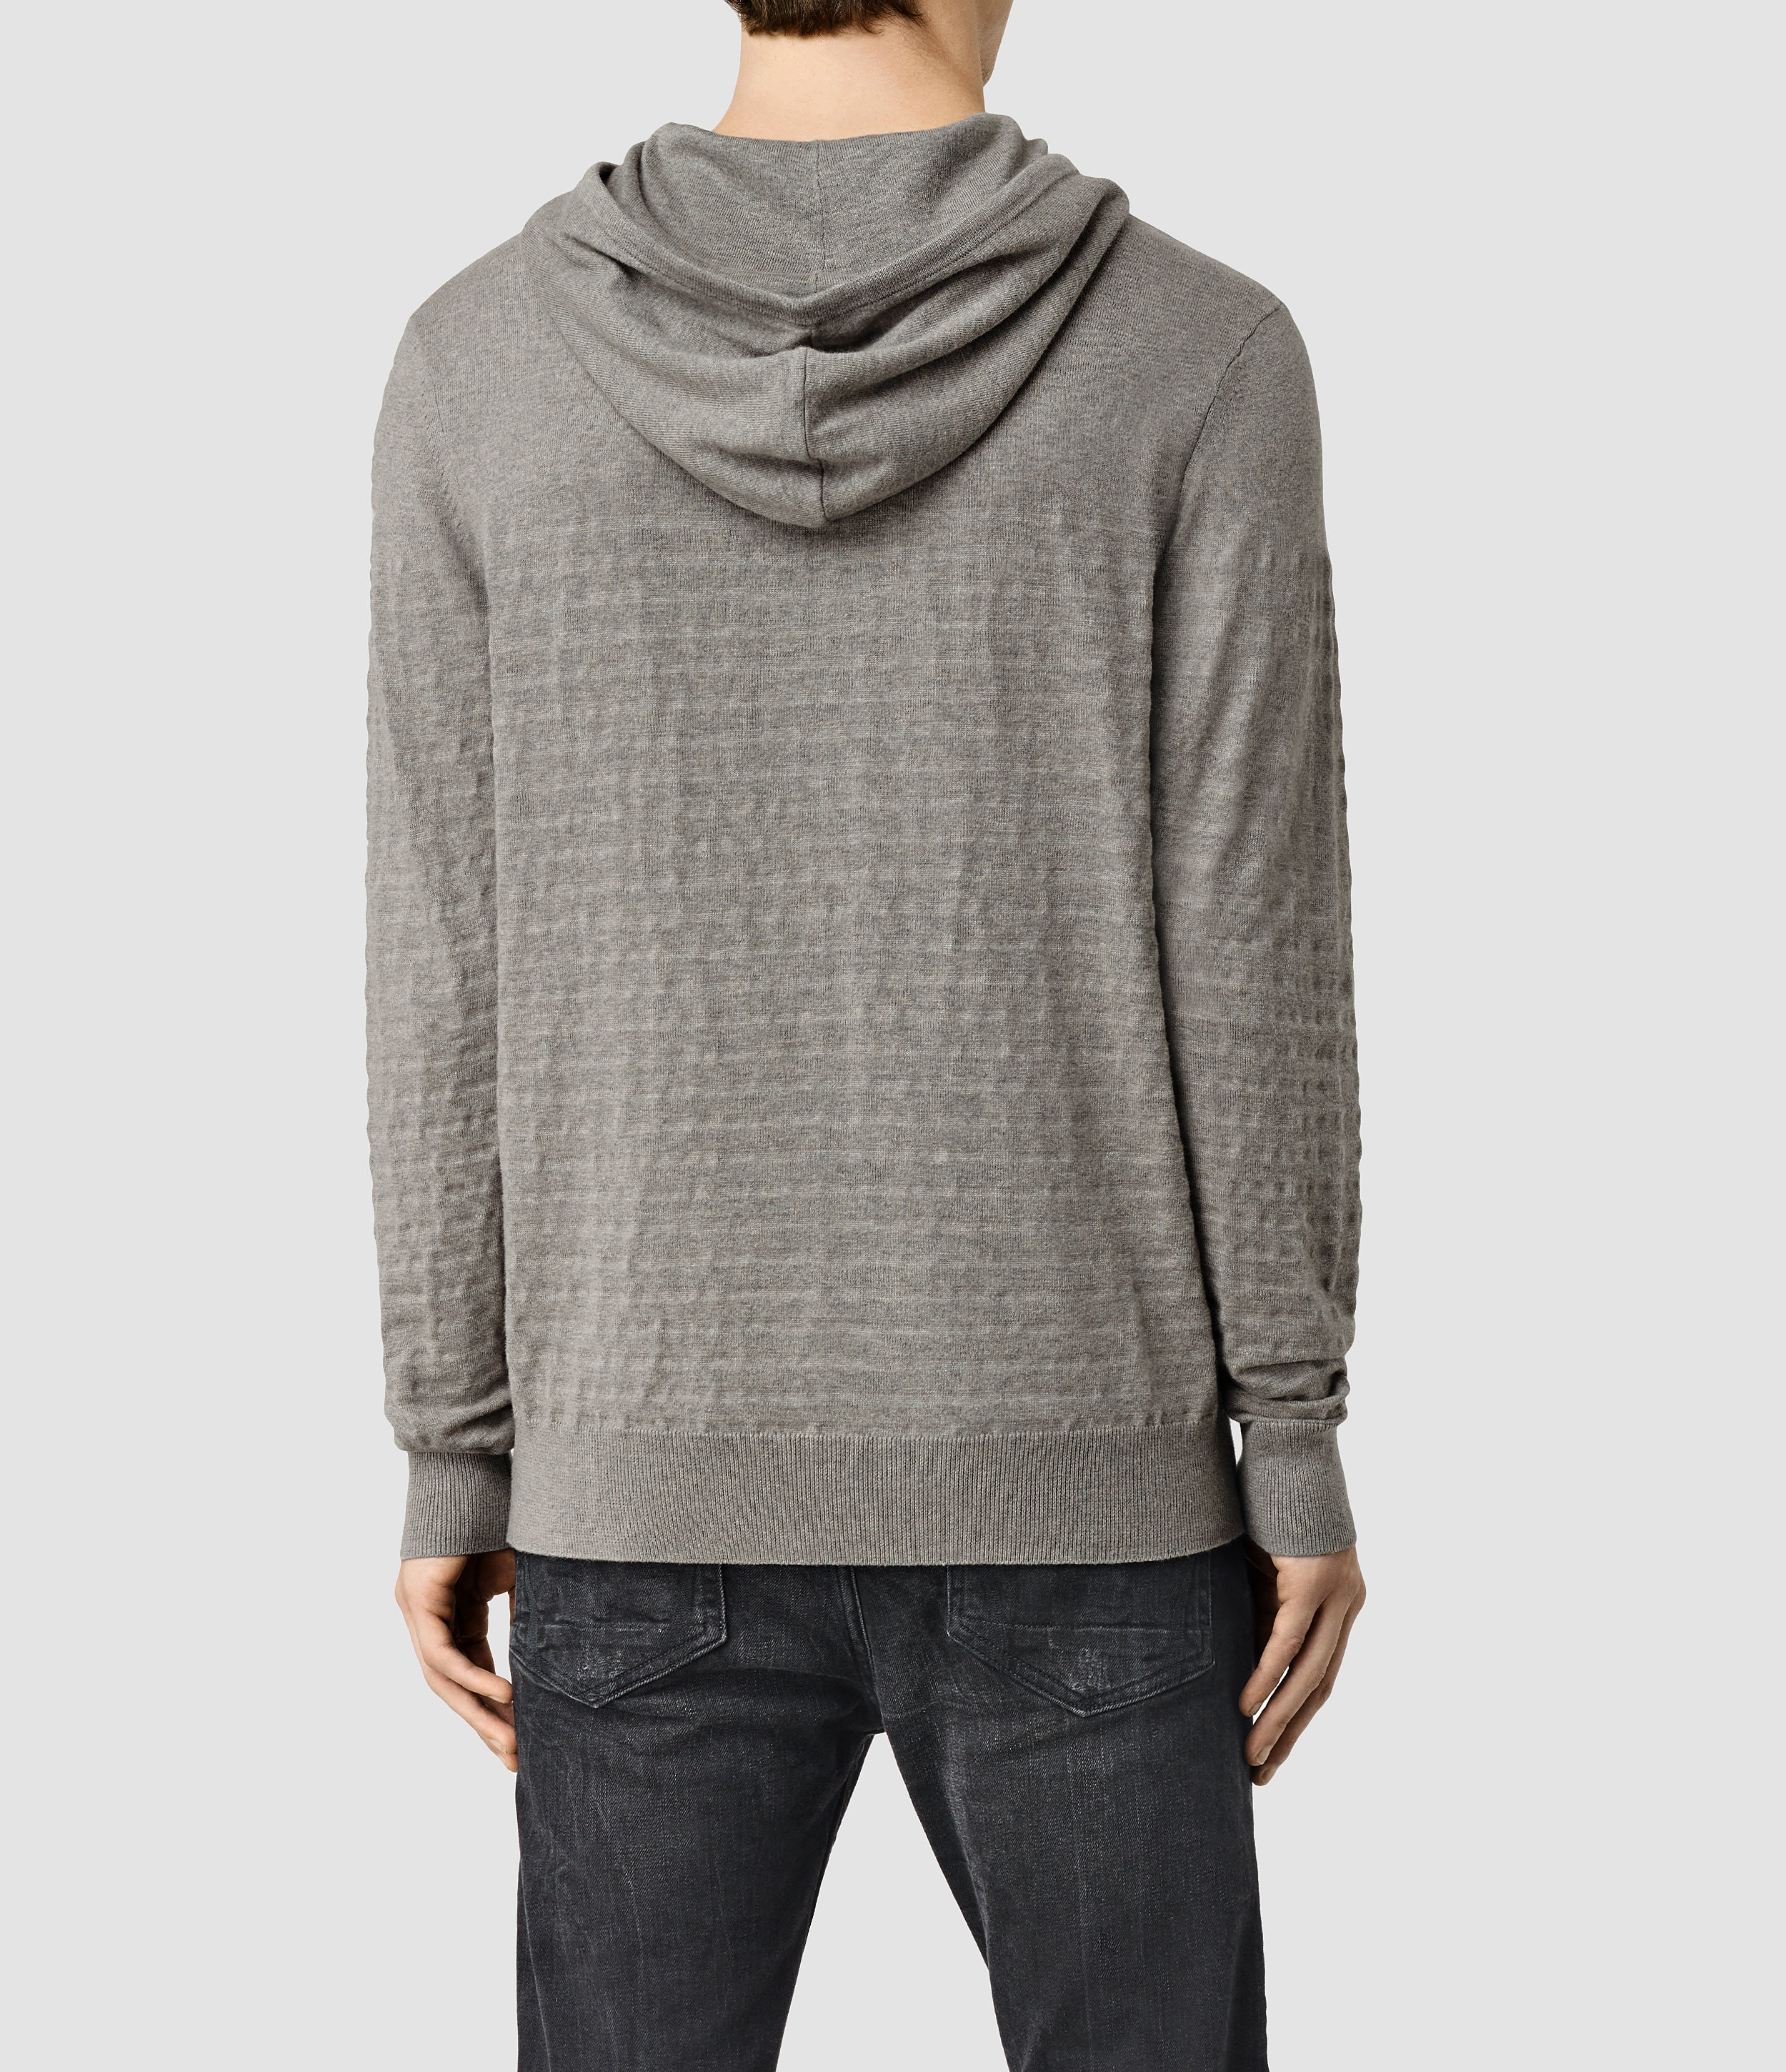 AllSaints Wherry Overhead Hoody Usa Usa in Military Grey (Grey) for Men